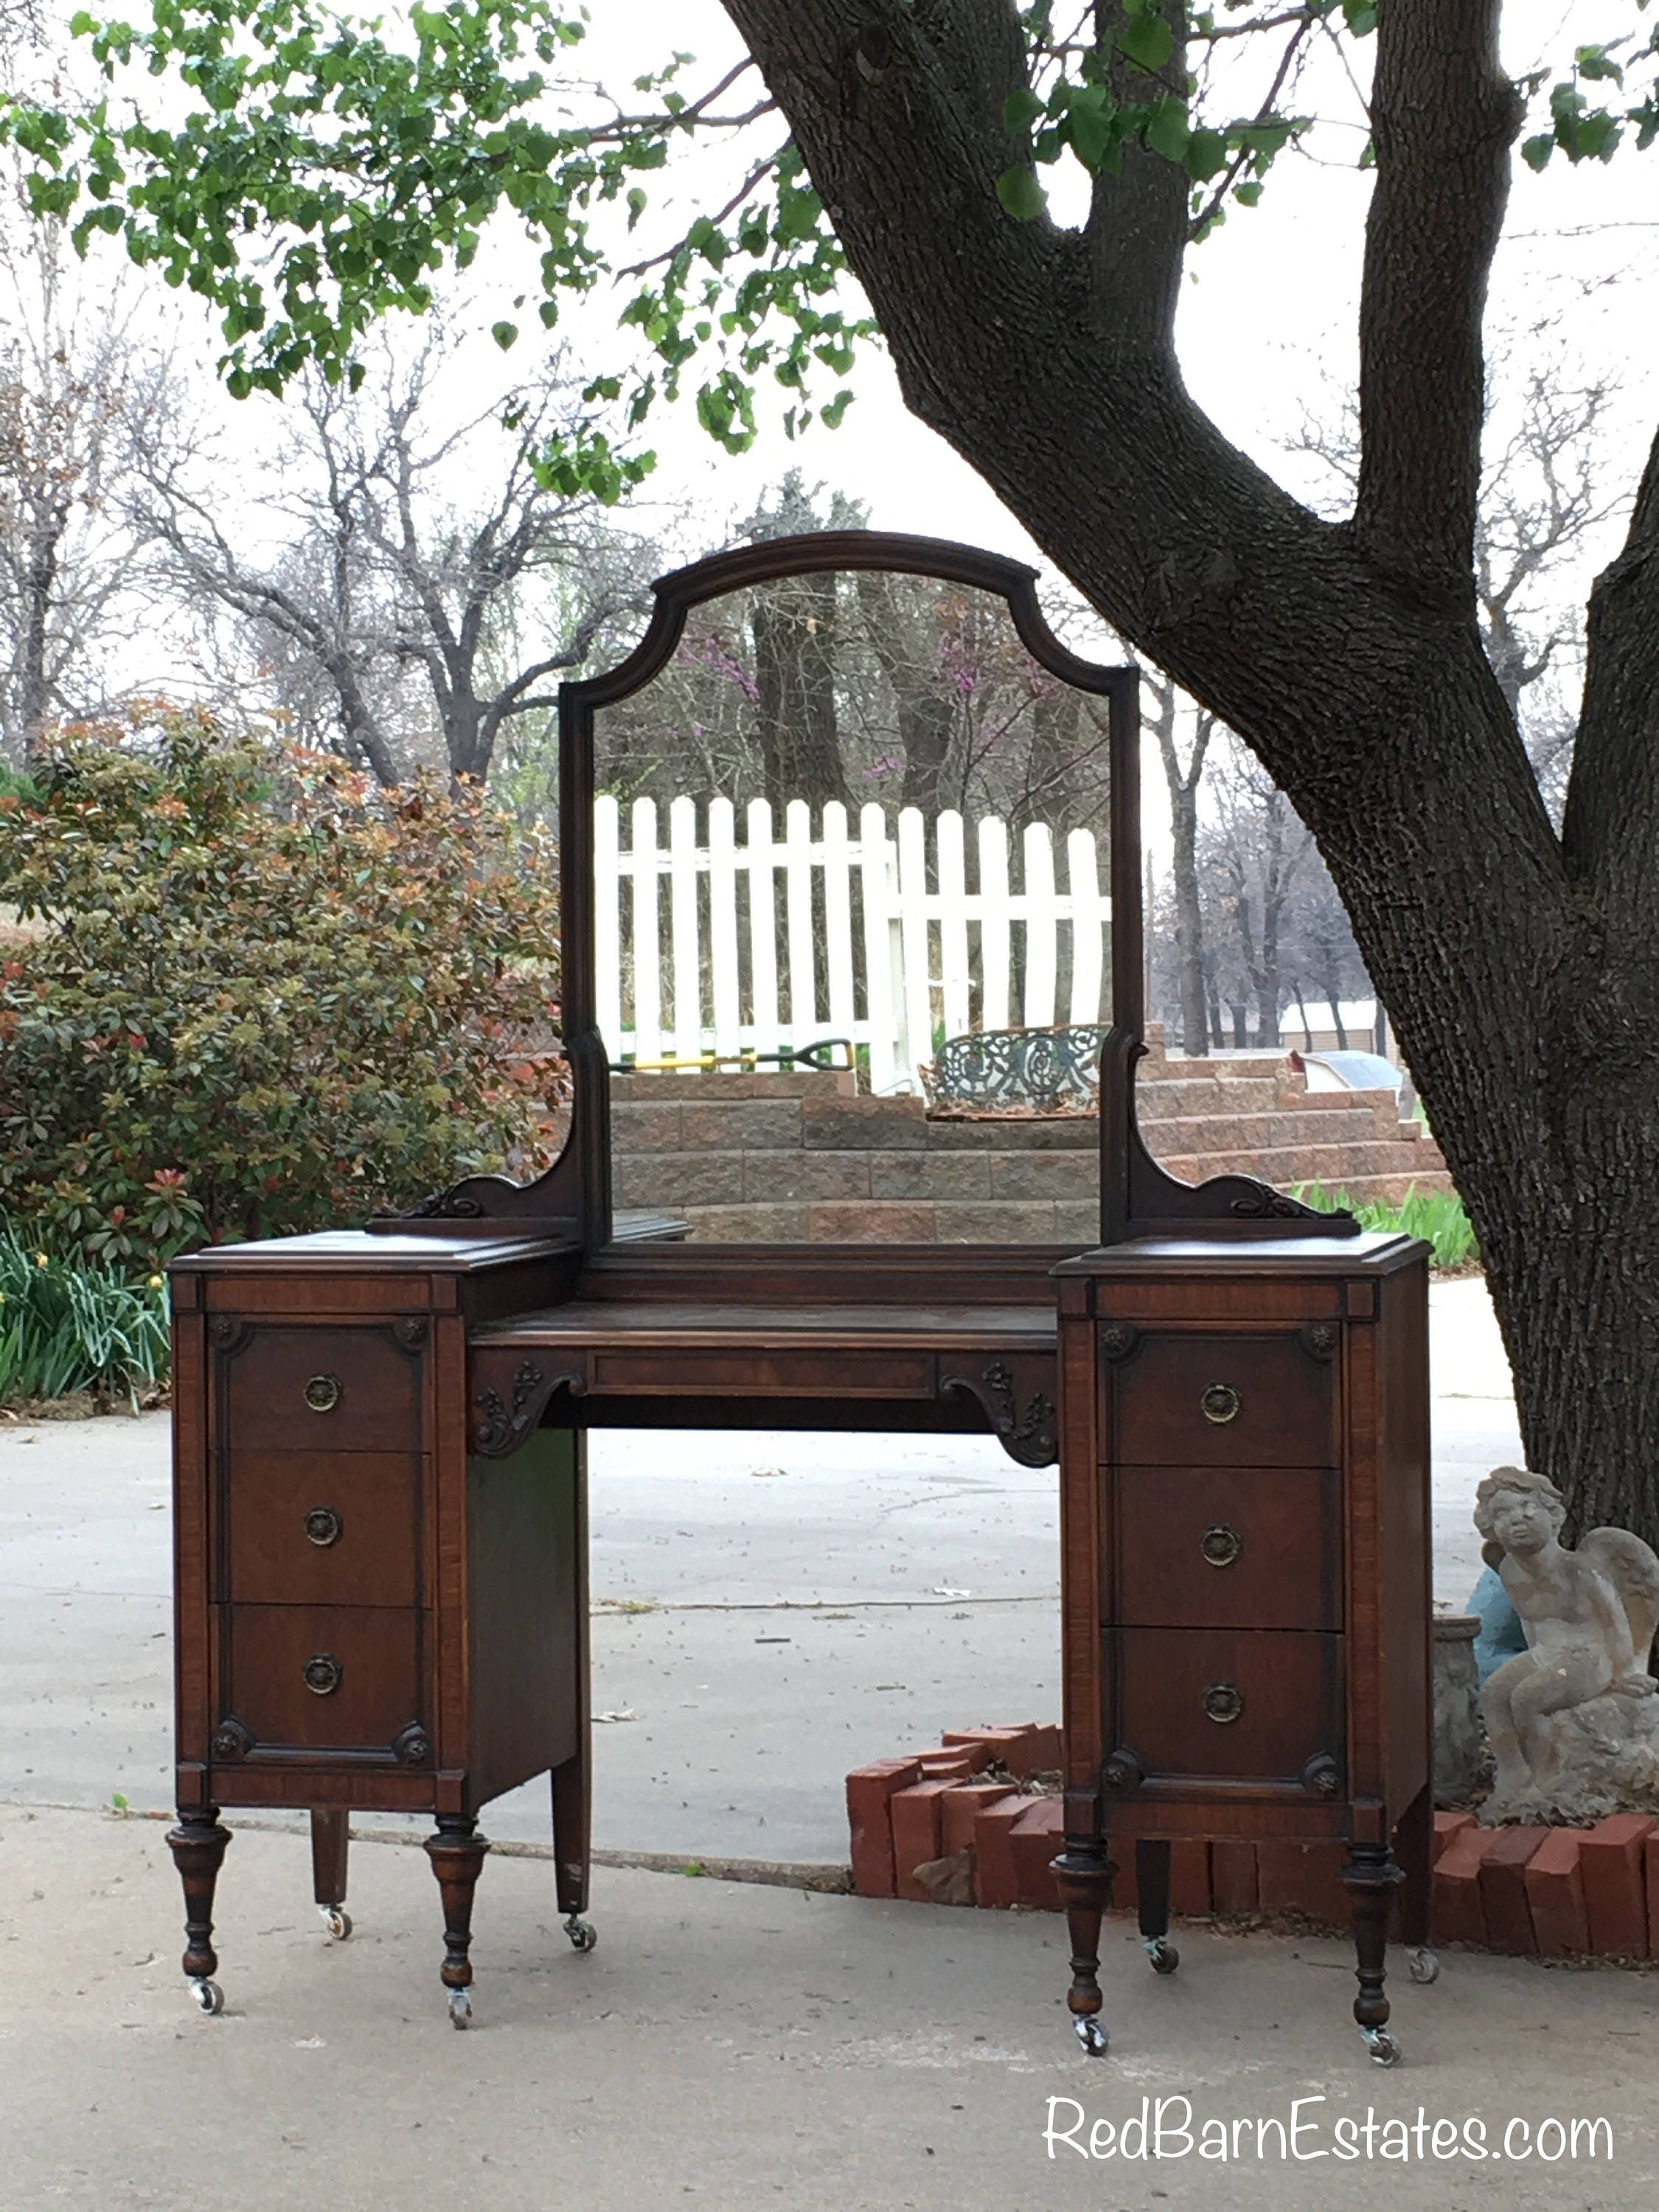 Antique Makeup Vanity 1920 S Sligh Brand In Stock Ready To Paint Shabby Chic Furniture 50 Wide Dresser With Mirror